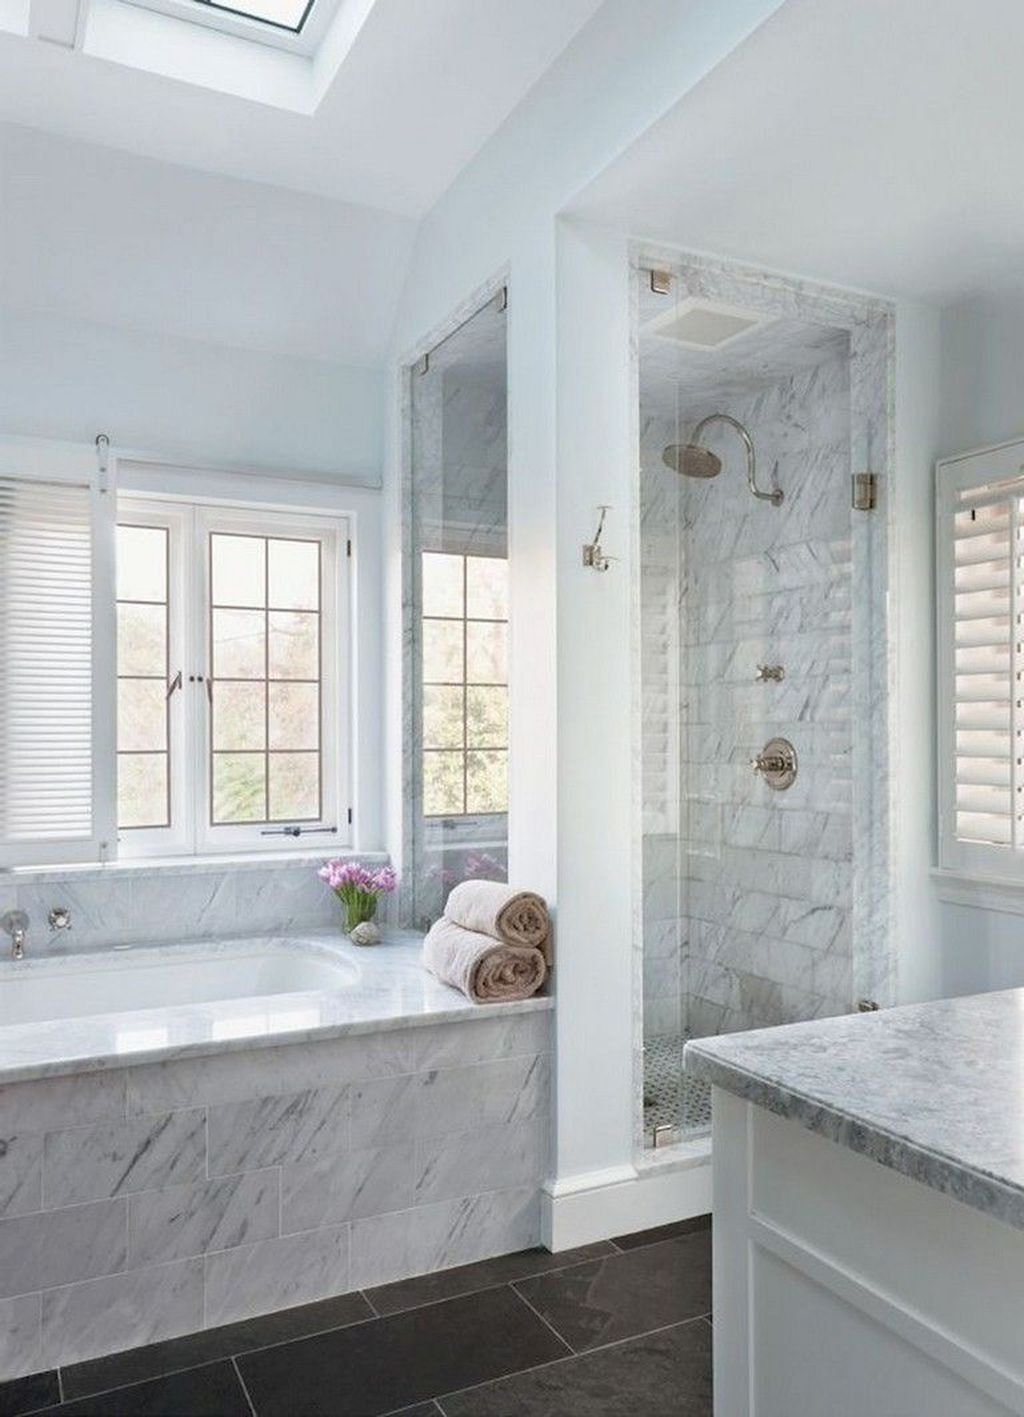 48 Simple Master Bathroom Renovation Ideas